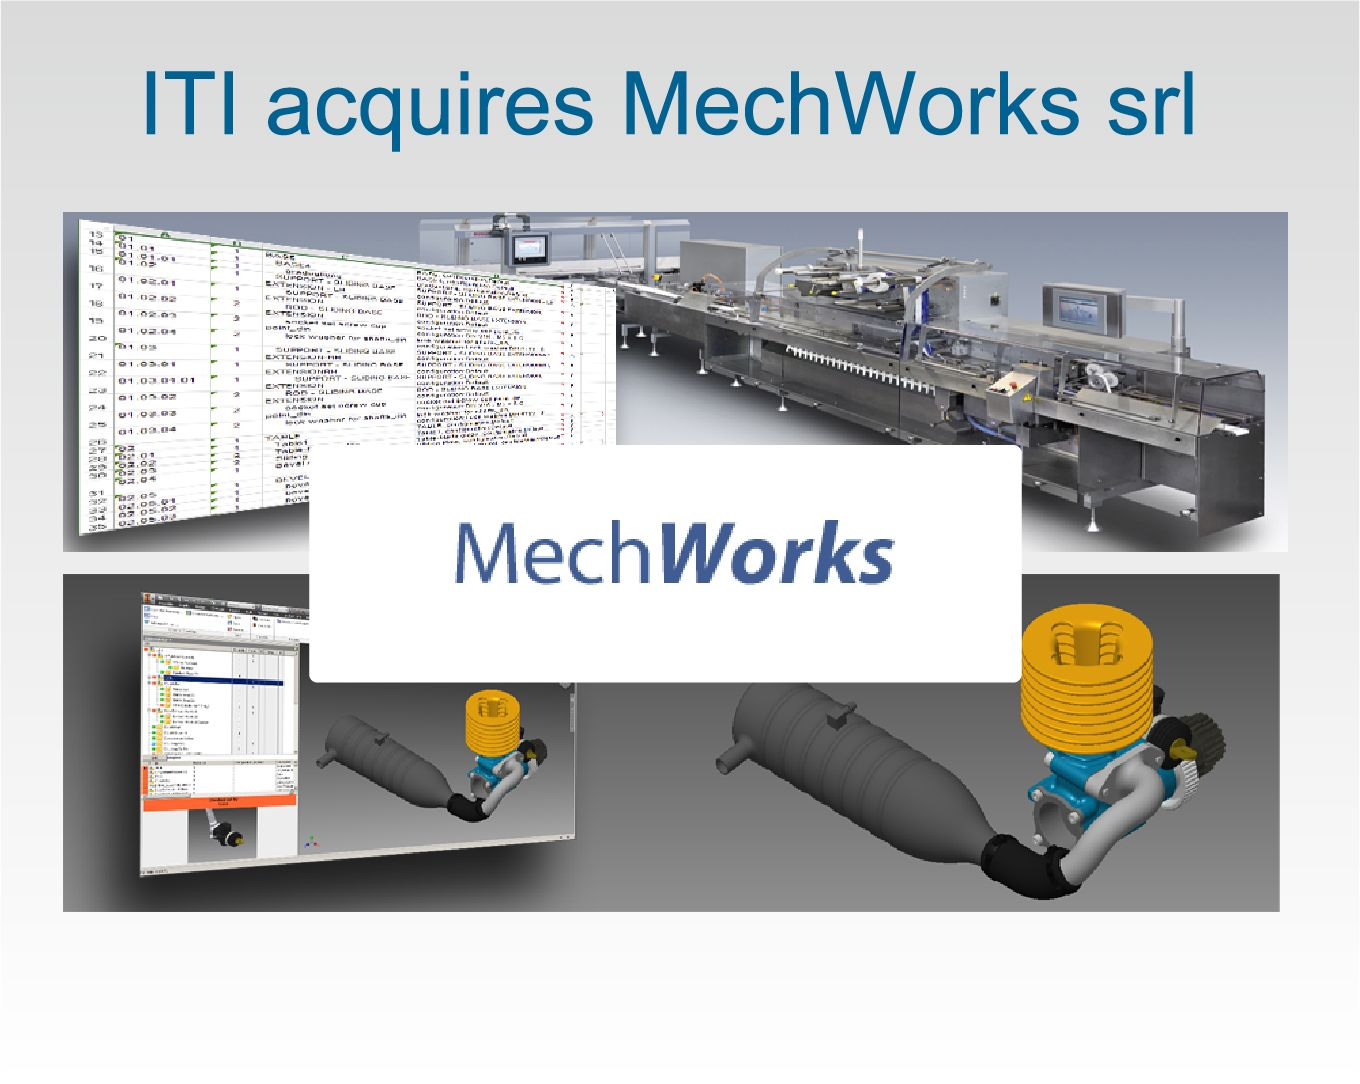 ITI acquires MechWorks srl